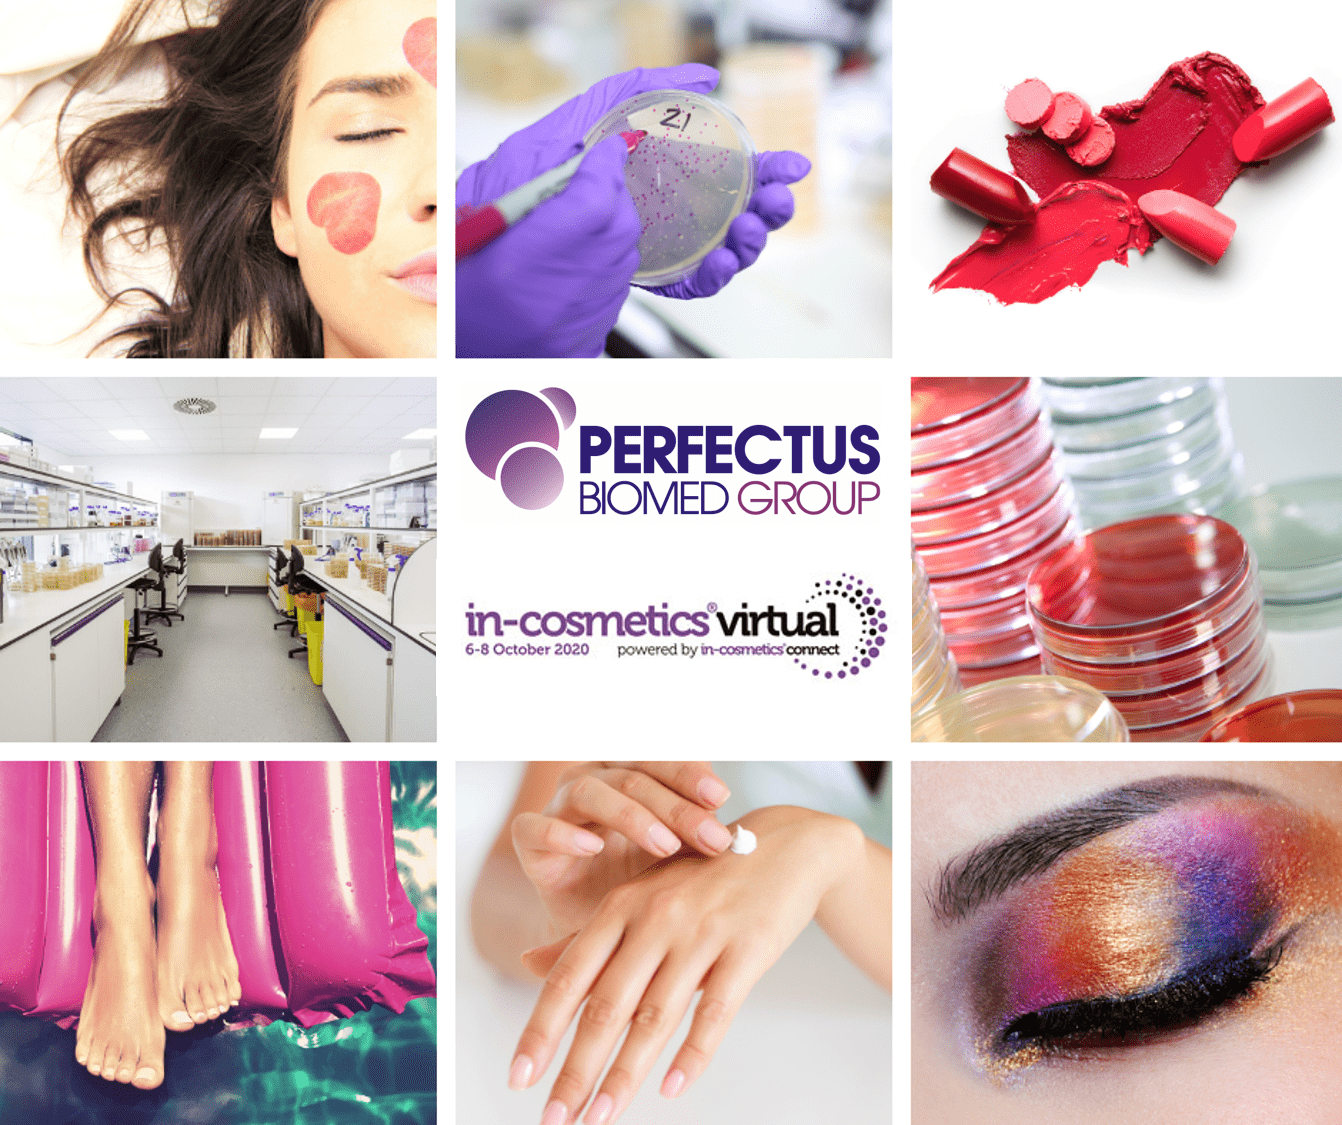 Perfectus Biomed to present at inaugural In Cosmetics Virtual event